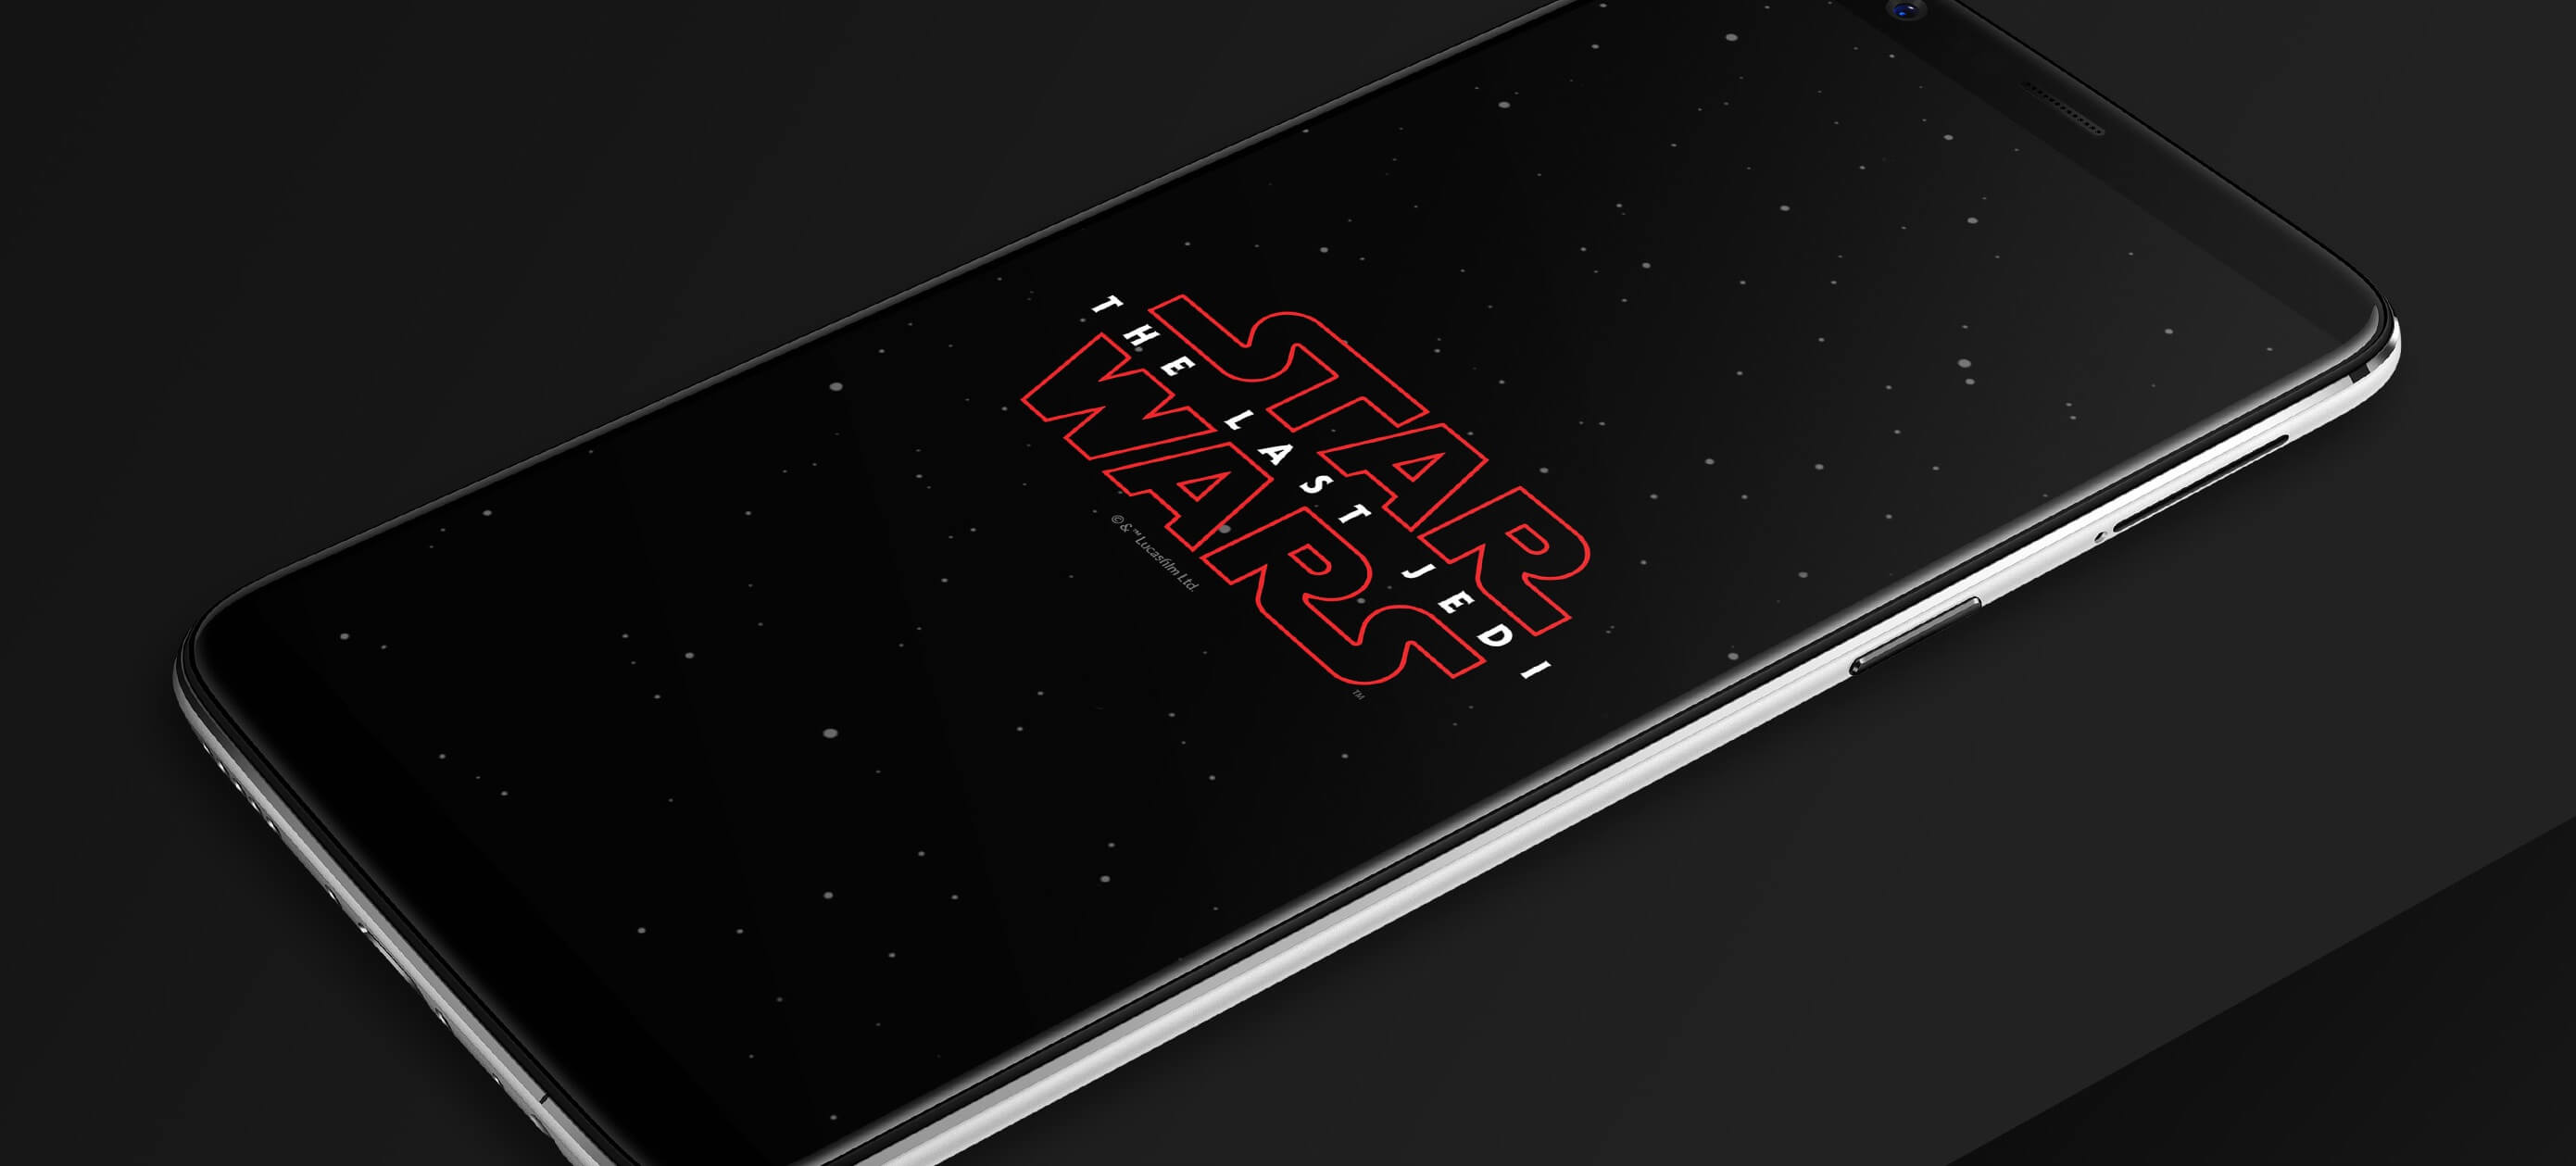 oneplus5t_star_wars_edition_smartphone_5